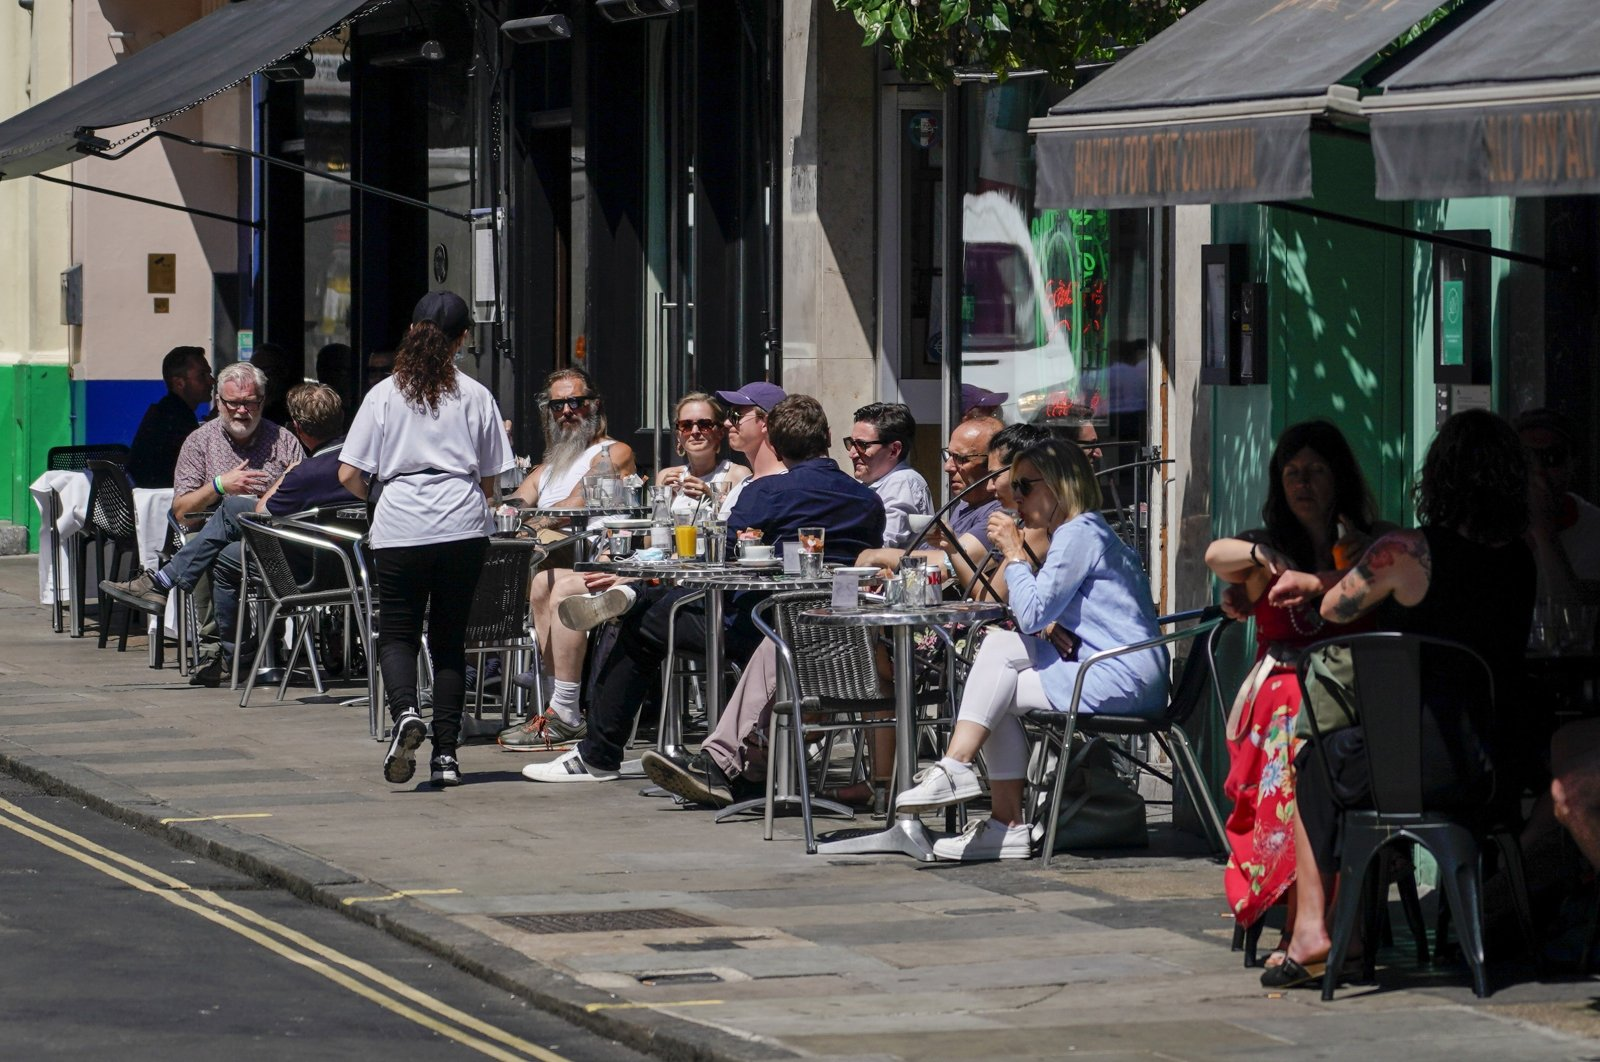 People sit at outdoor tables at a restaurant in Soho, in London, June 14, 2021. (AP Photo)